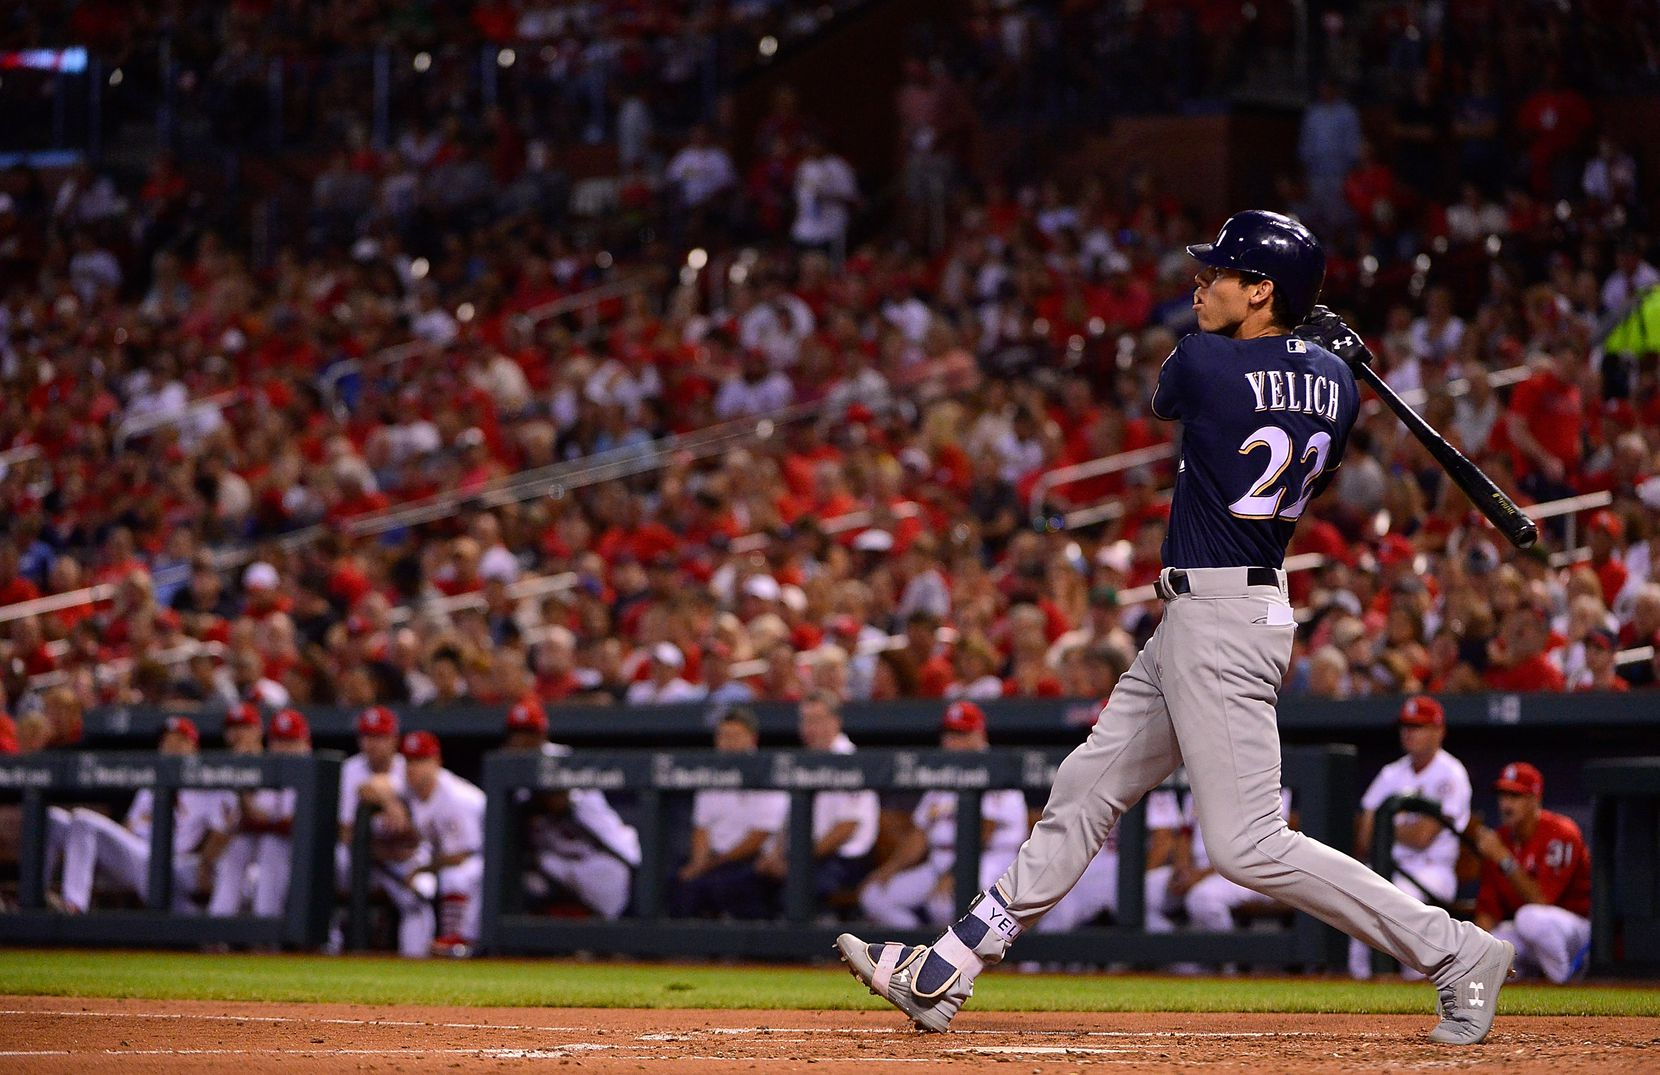 FILE - Brewers outfielder Christian Yelich (22) hits a double during the third inning of a game against the Cardinals at Busch Stadium on Aug. 17, 2018, in St Louis. (Photo by Jeff Curry/Getty Images)